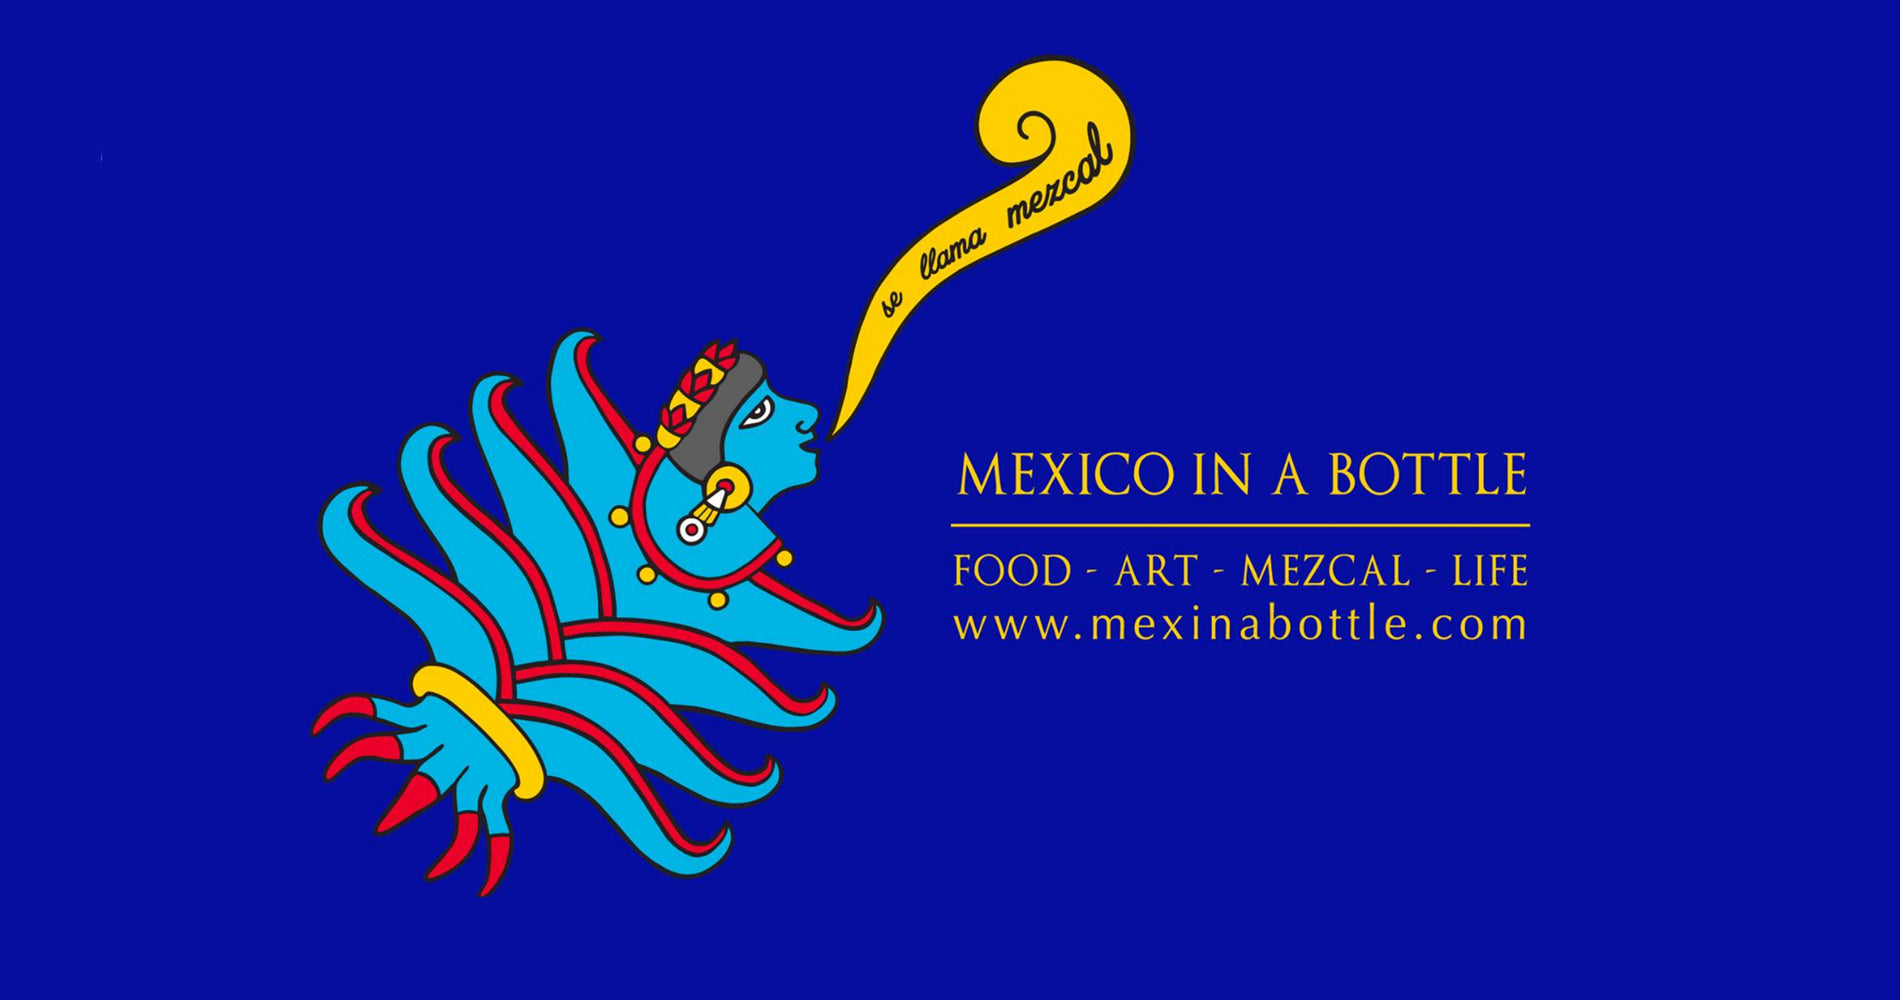 Mexico in a Bottle NYC - House of Yes